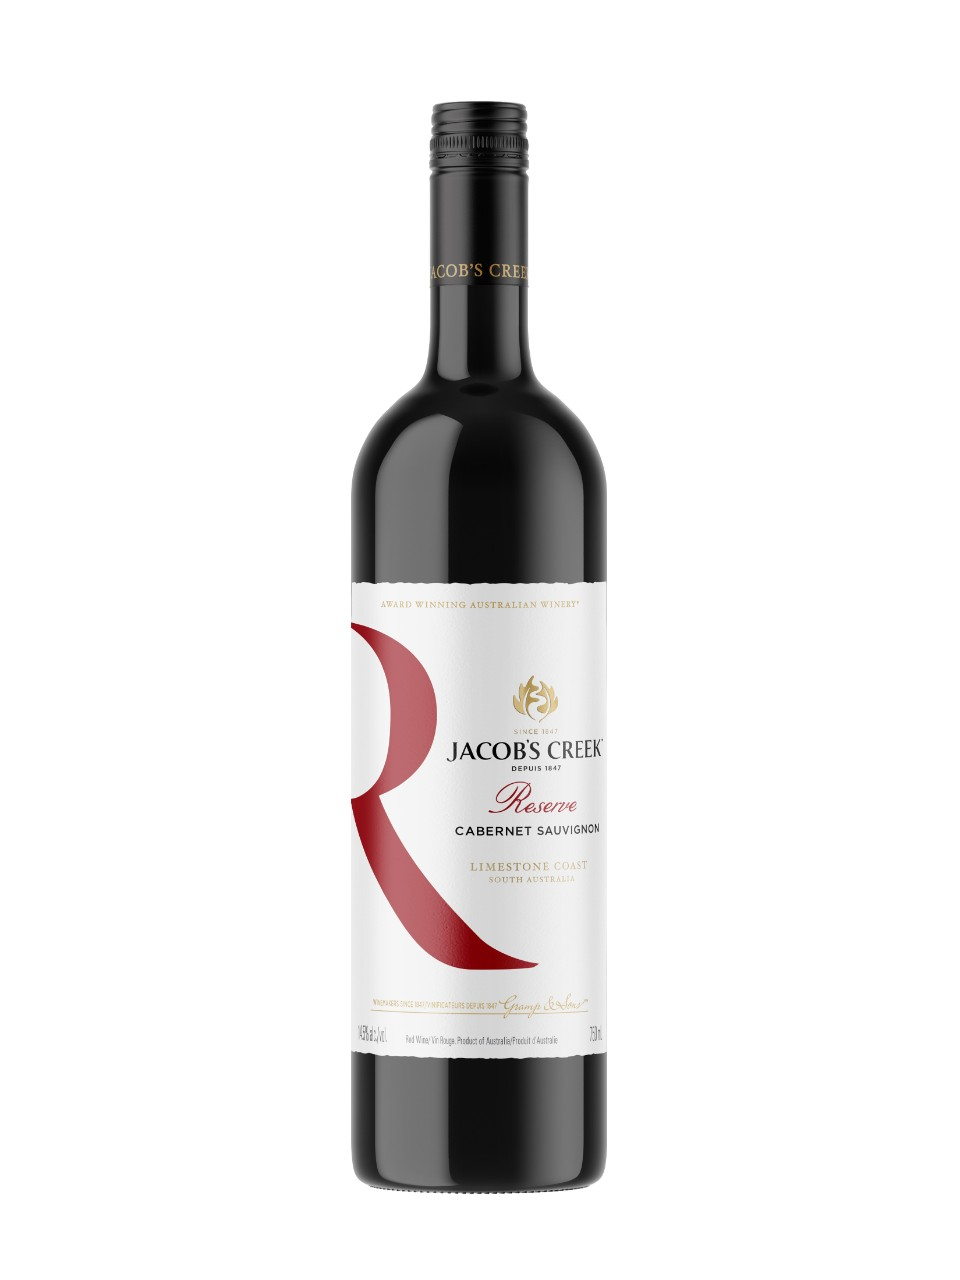 Image for Jacob's Creek Reserve Cabernet Sauvignon Limestone Coast from LCBO